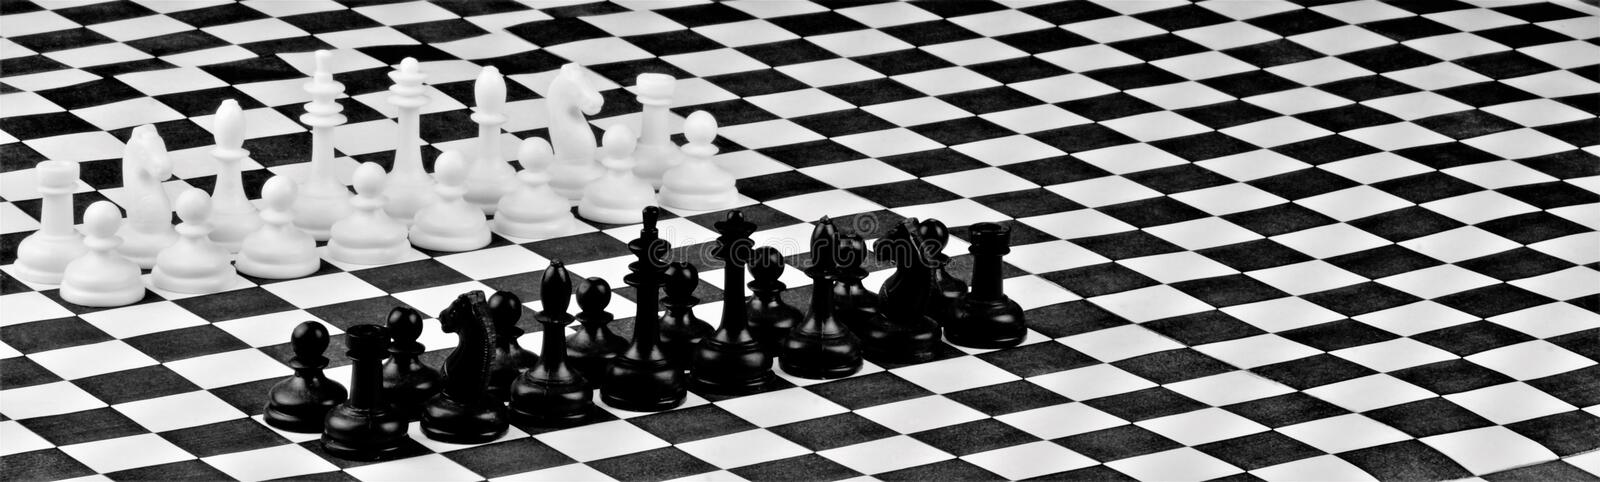 Chess on the chessboard, competition and strategy of intellectual victory. Chess is a popular ancient Board logic antagonistic royalty free stock photos